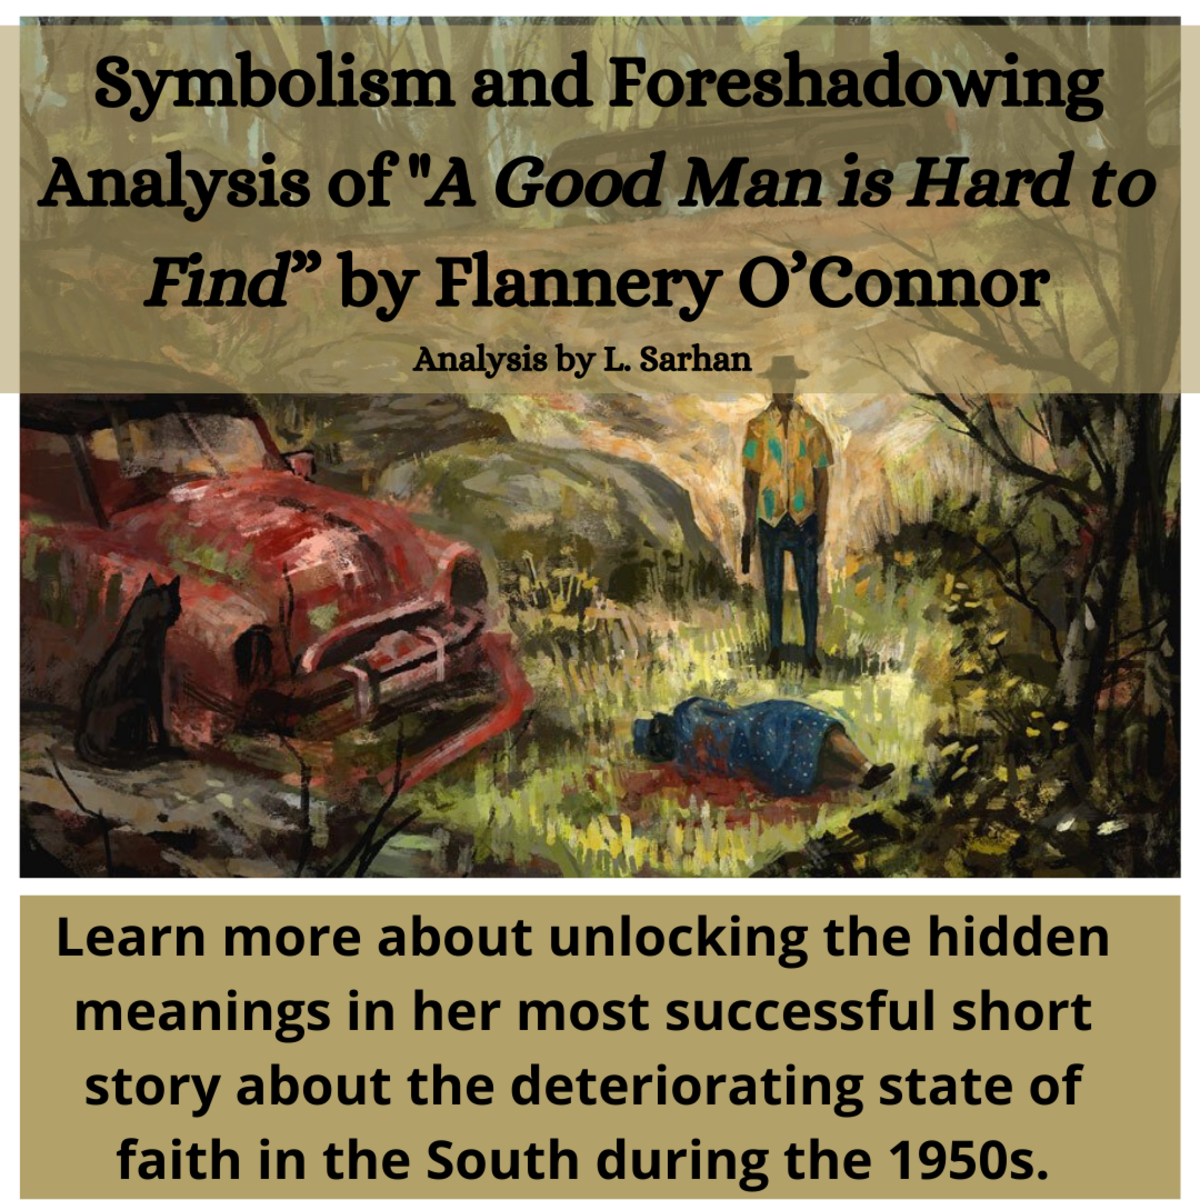 """Note: All interpretation made by anyone other than the Flannery O'Connor herself is speculative and subjective to opinion. The following are potential interpretations of elements included in """"A Good Man is Hard to Find"""" by Flannery O'Connor."""